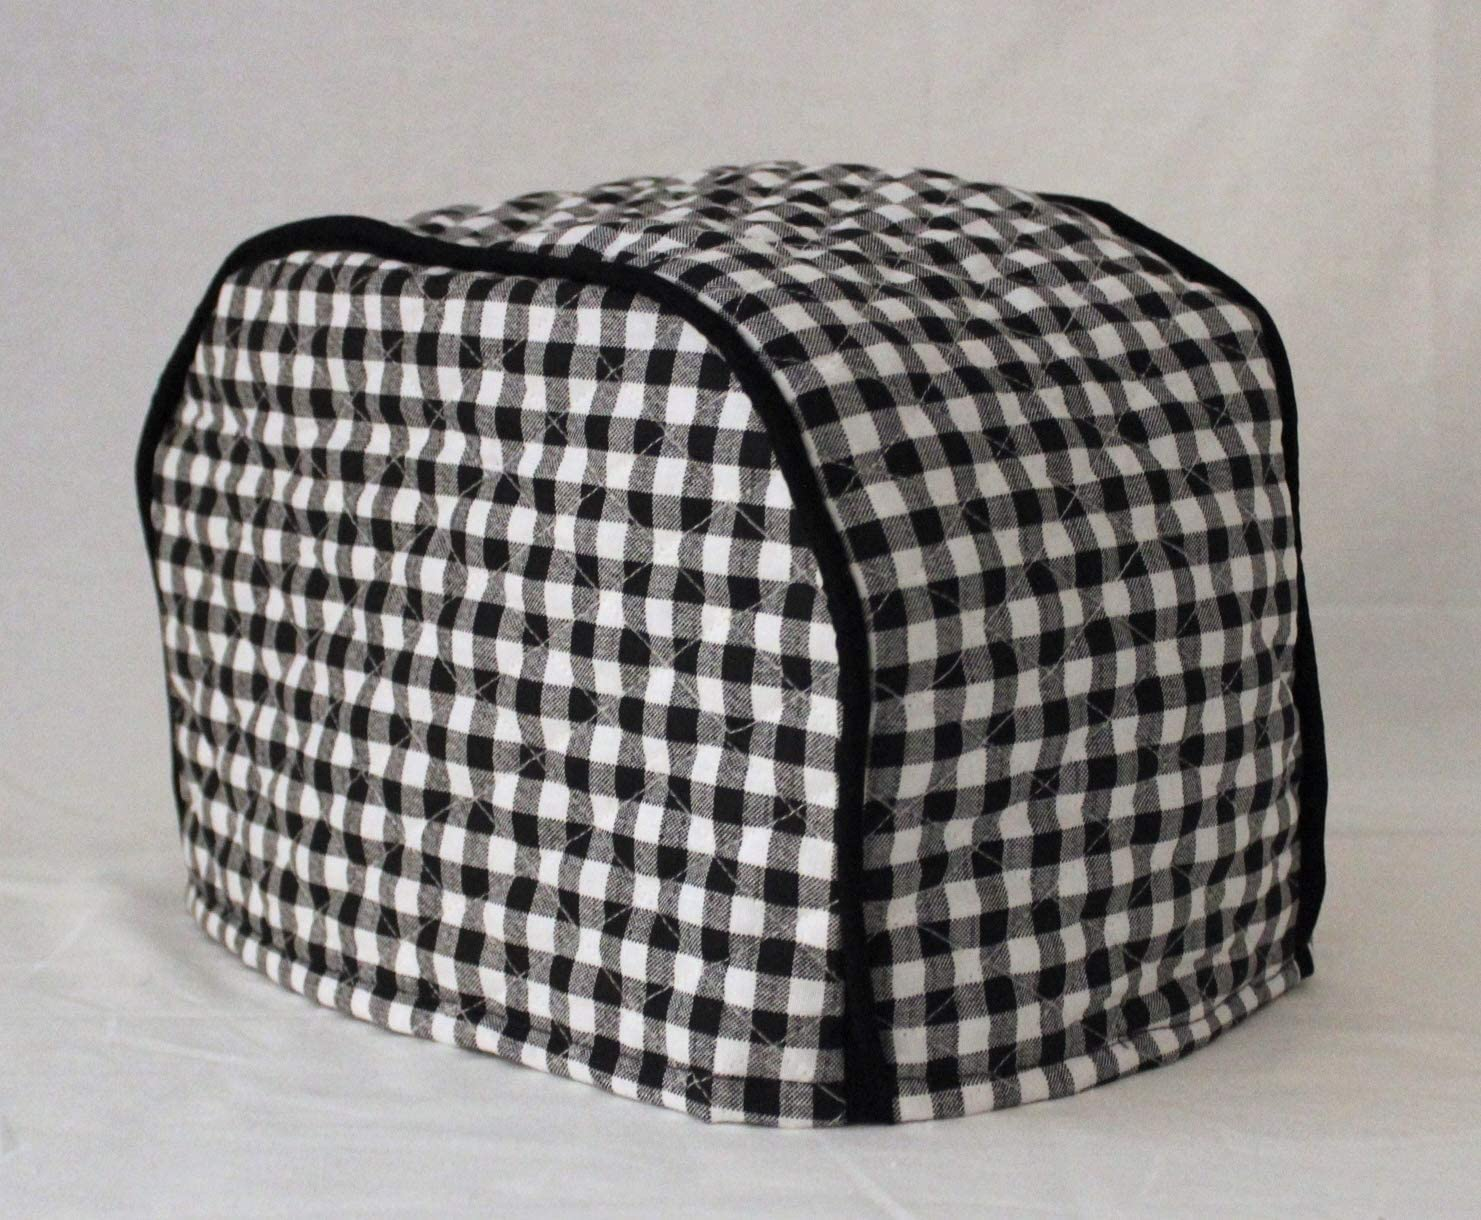 Simple Home Inspirations Premium Quilted Toaster Cover (2 Slice 12 x 8, Black Check)